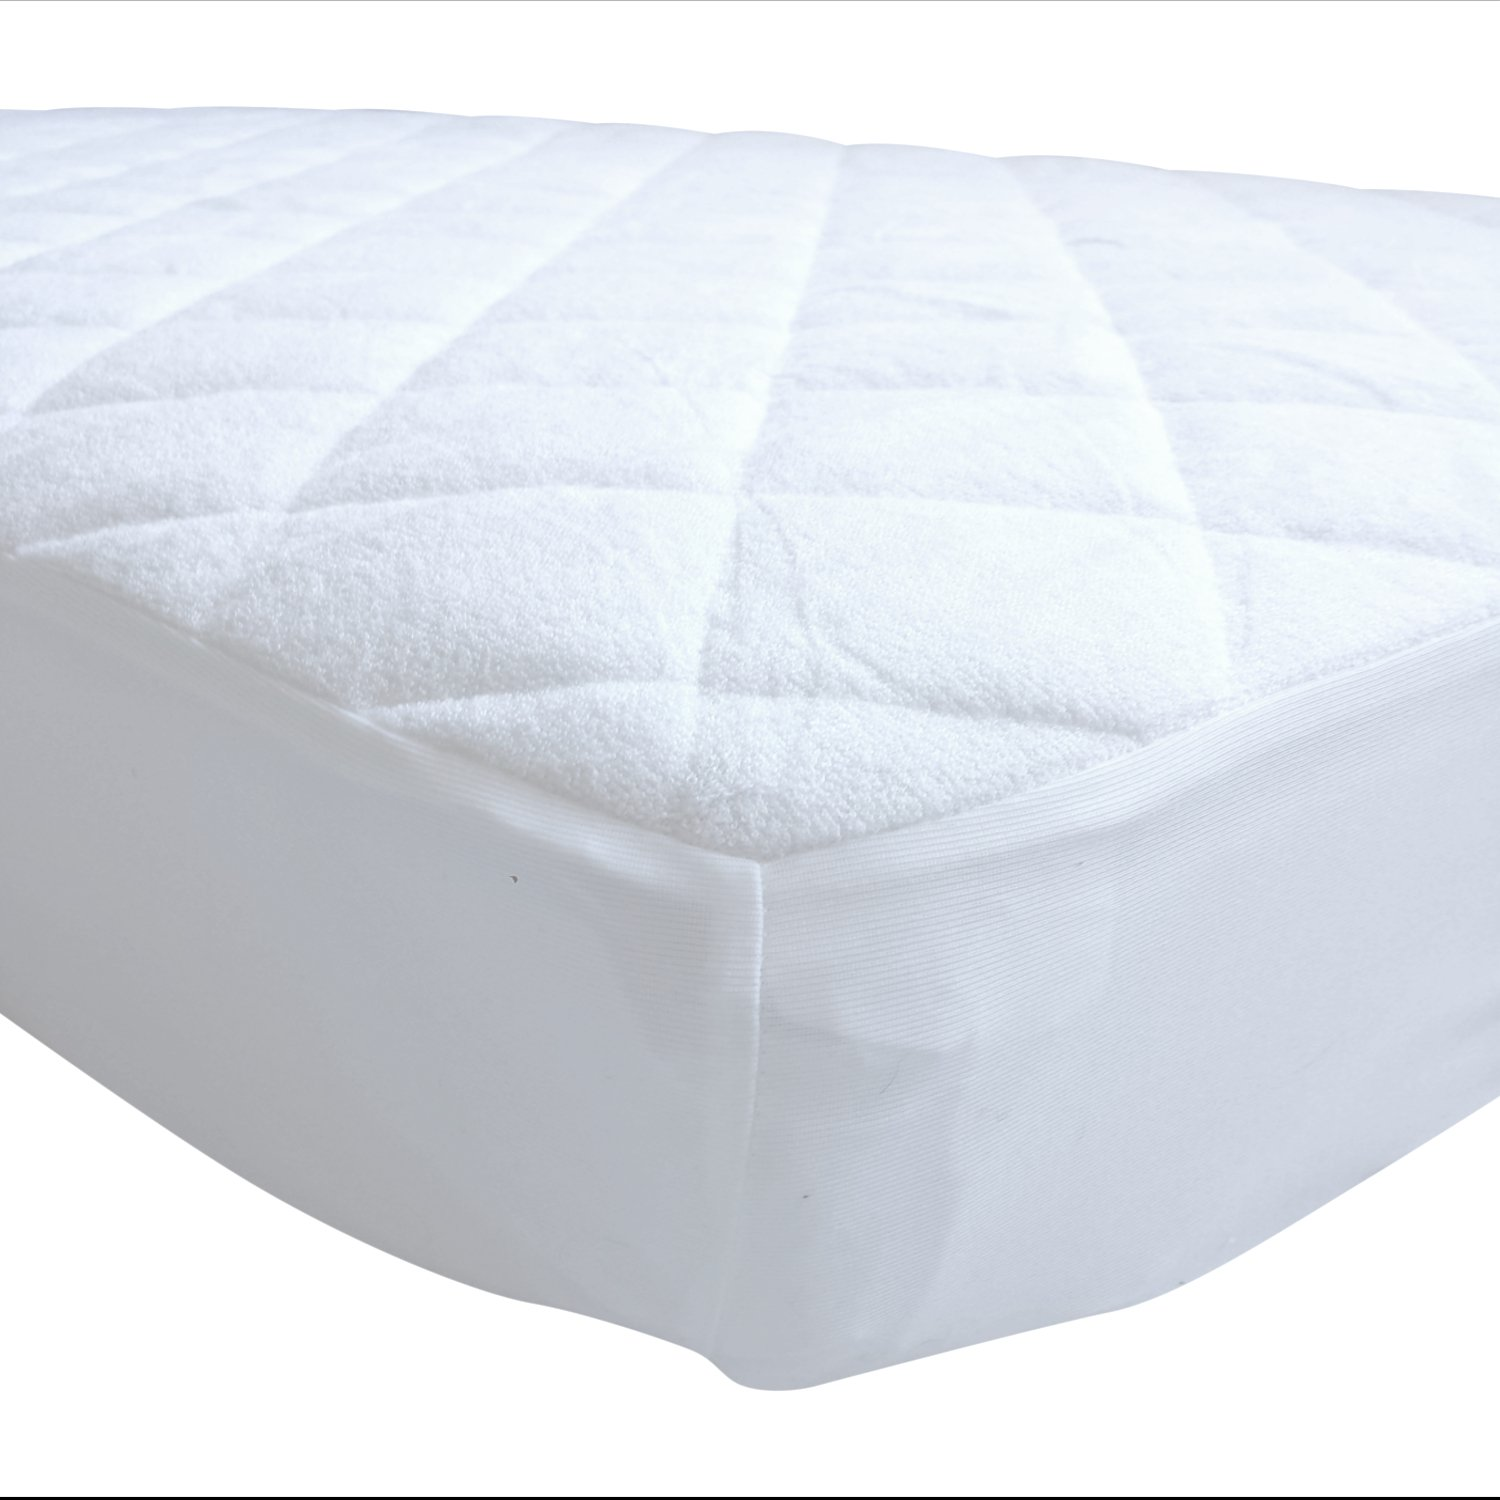 Amazon.com : Pack N Play Crib Mattress Pad Cover Fits Pack and Play or Mini  Portable Crib and Playard Mattresses : Baby